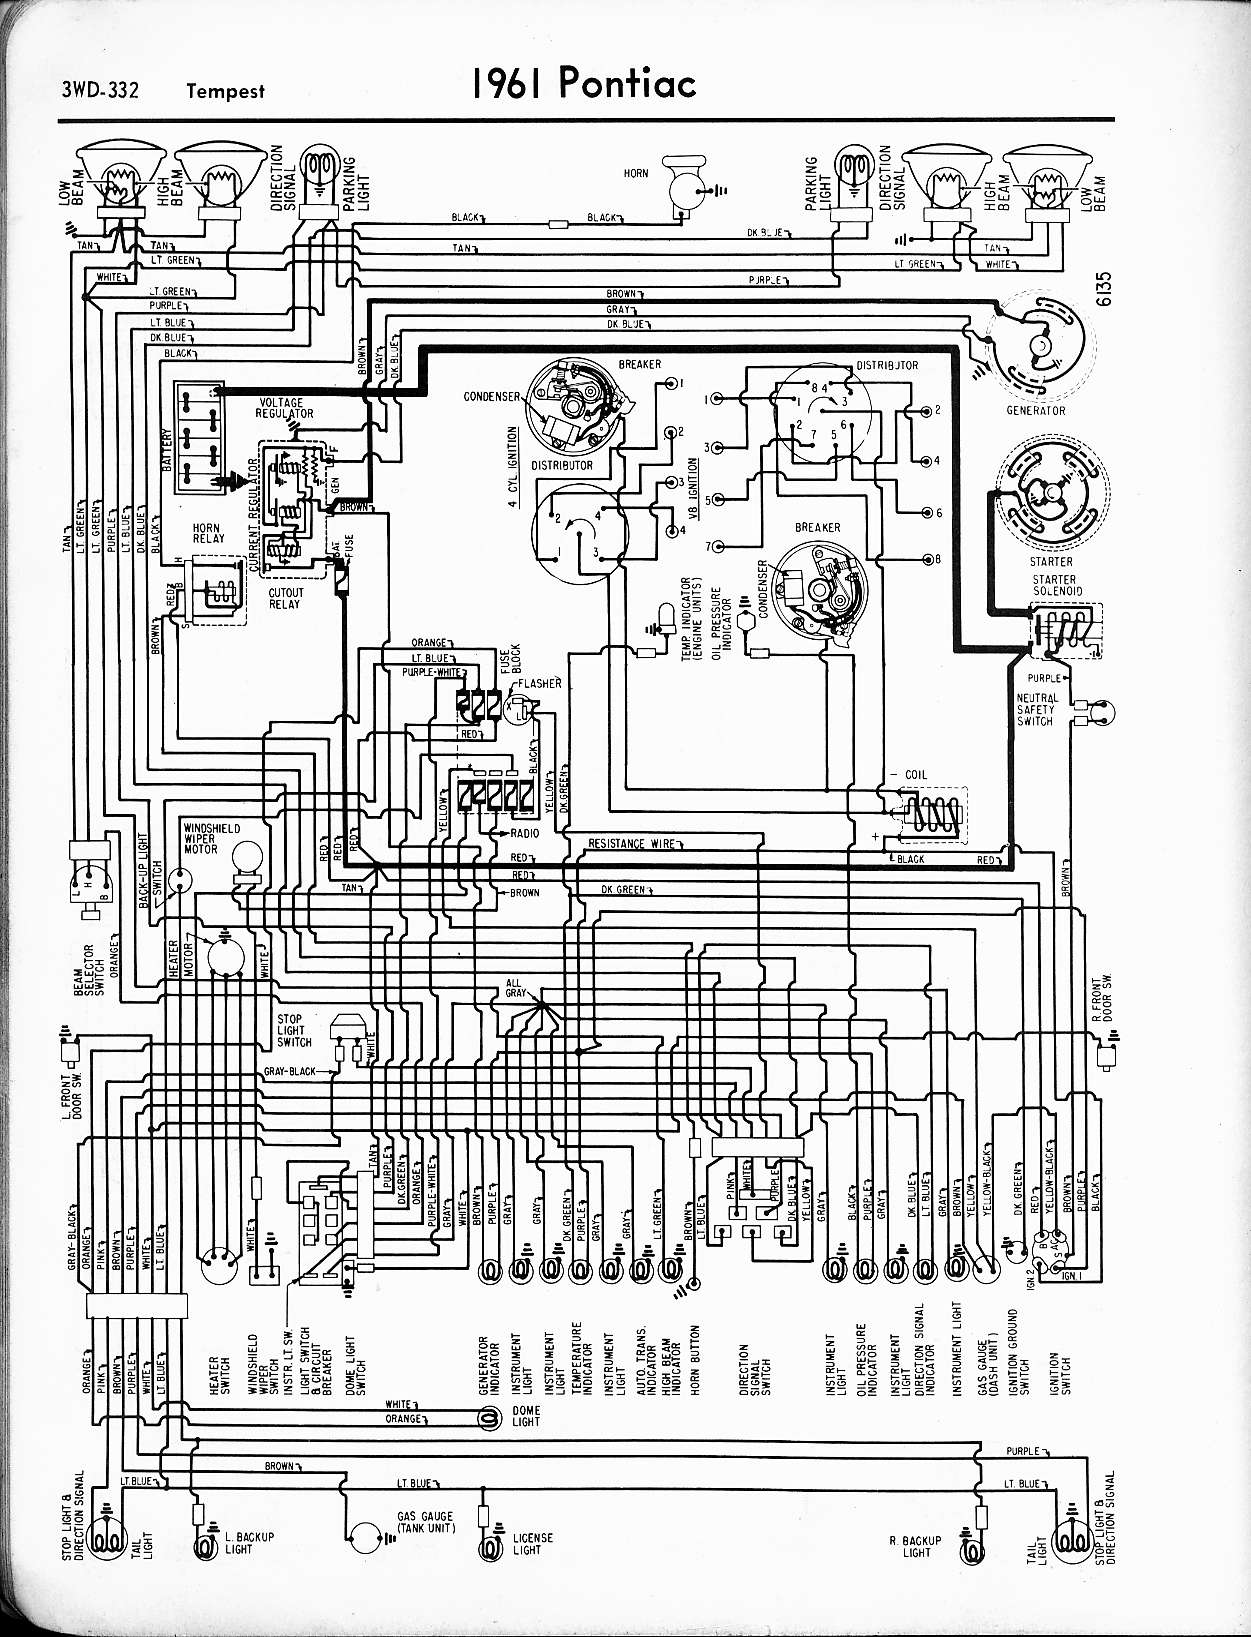 Wallace Racing Wiring Diagrams 2005 Pontiac Montana Wiring Diagram Schematic  70 Pontiac Wiring Diagram